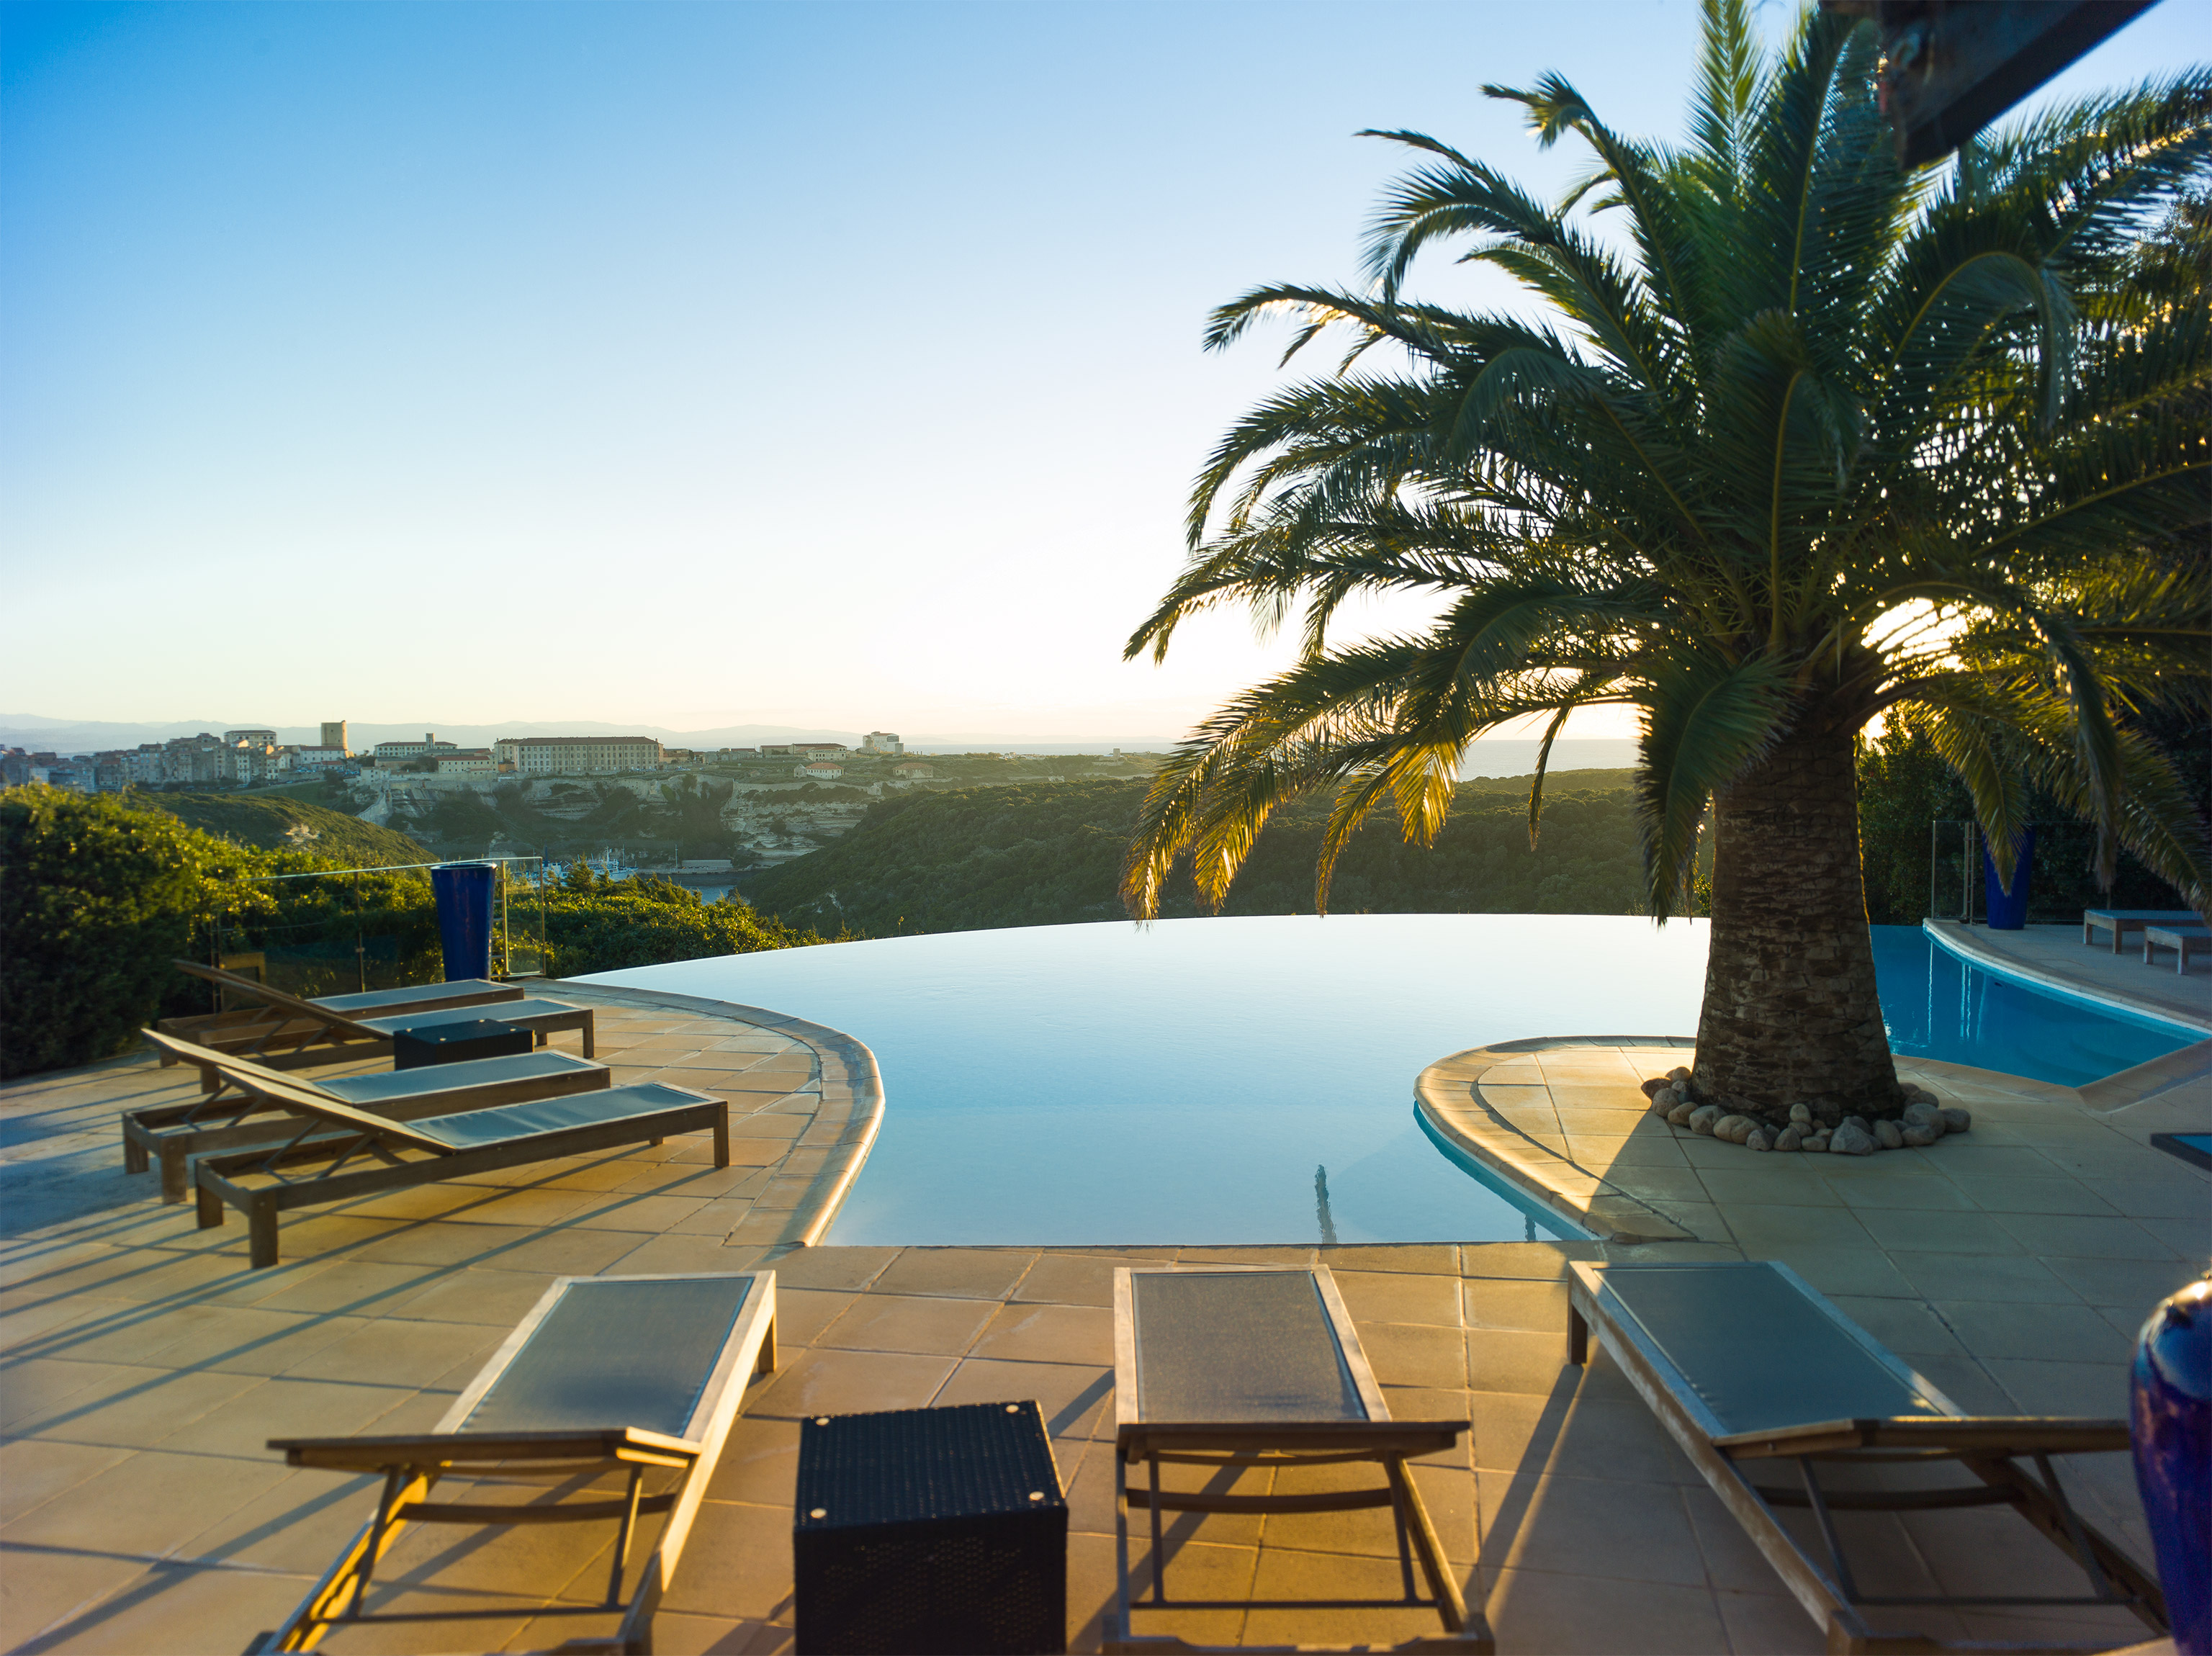 Hotels in corsica  : The Bonifacio Residence